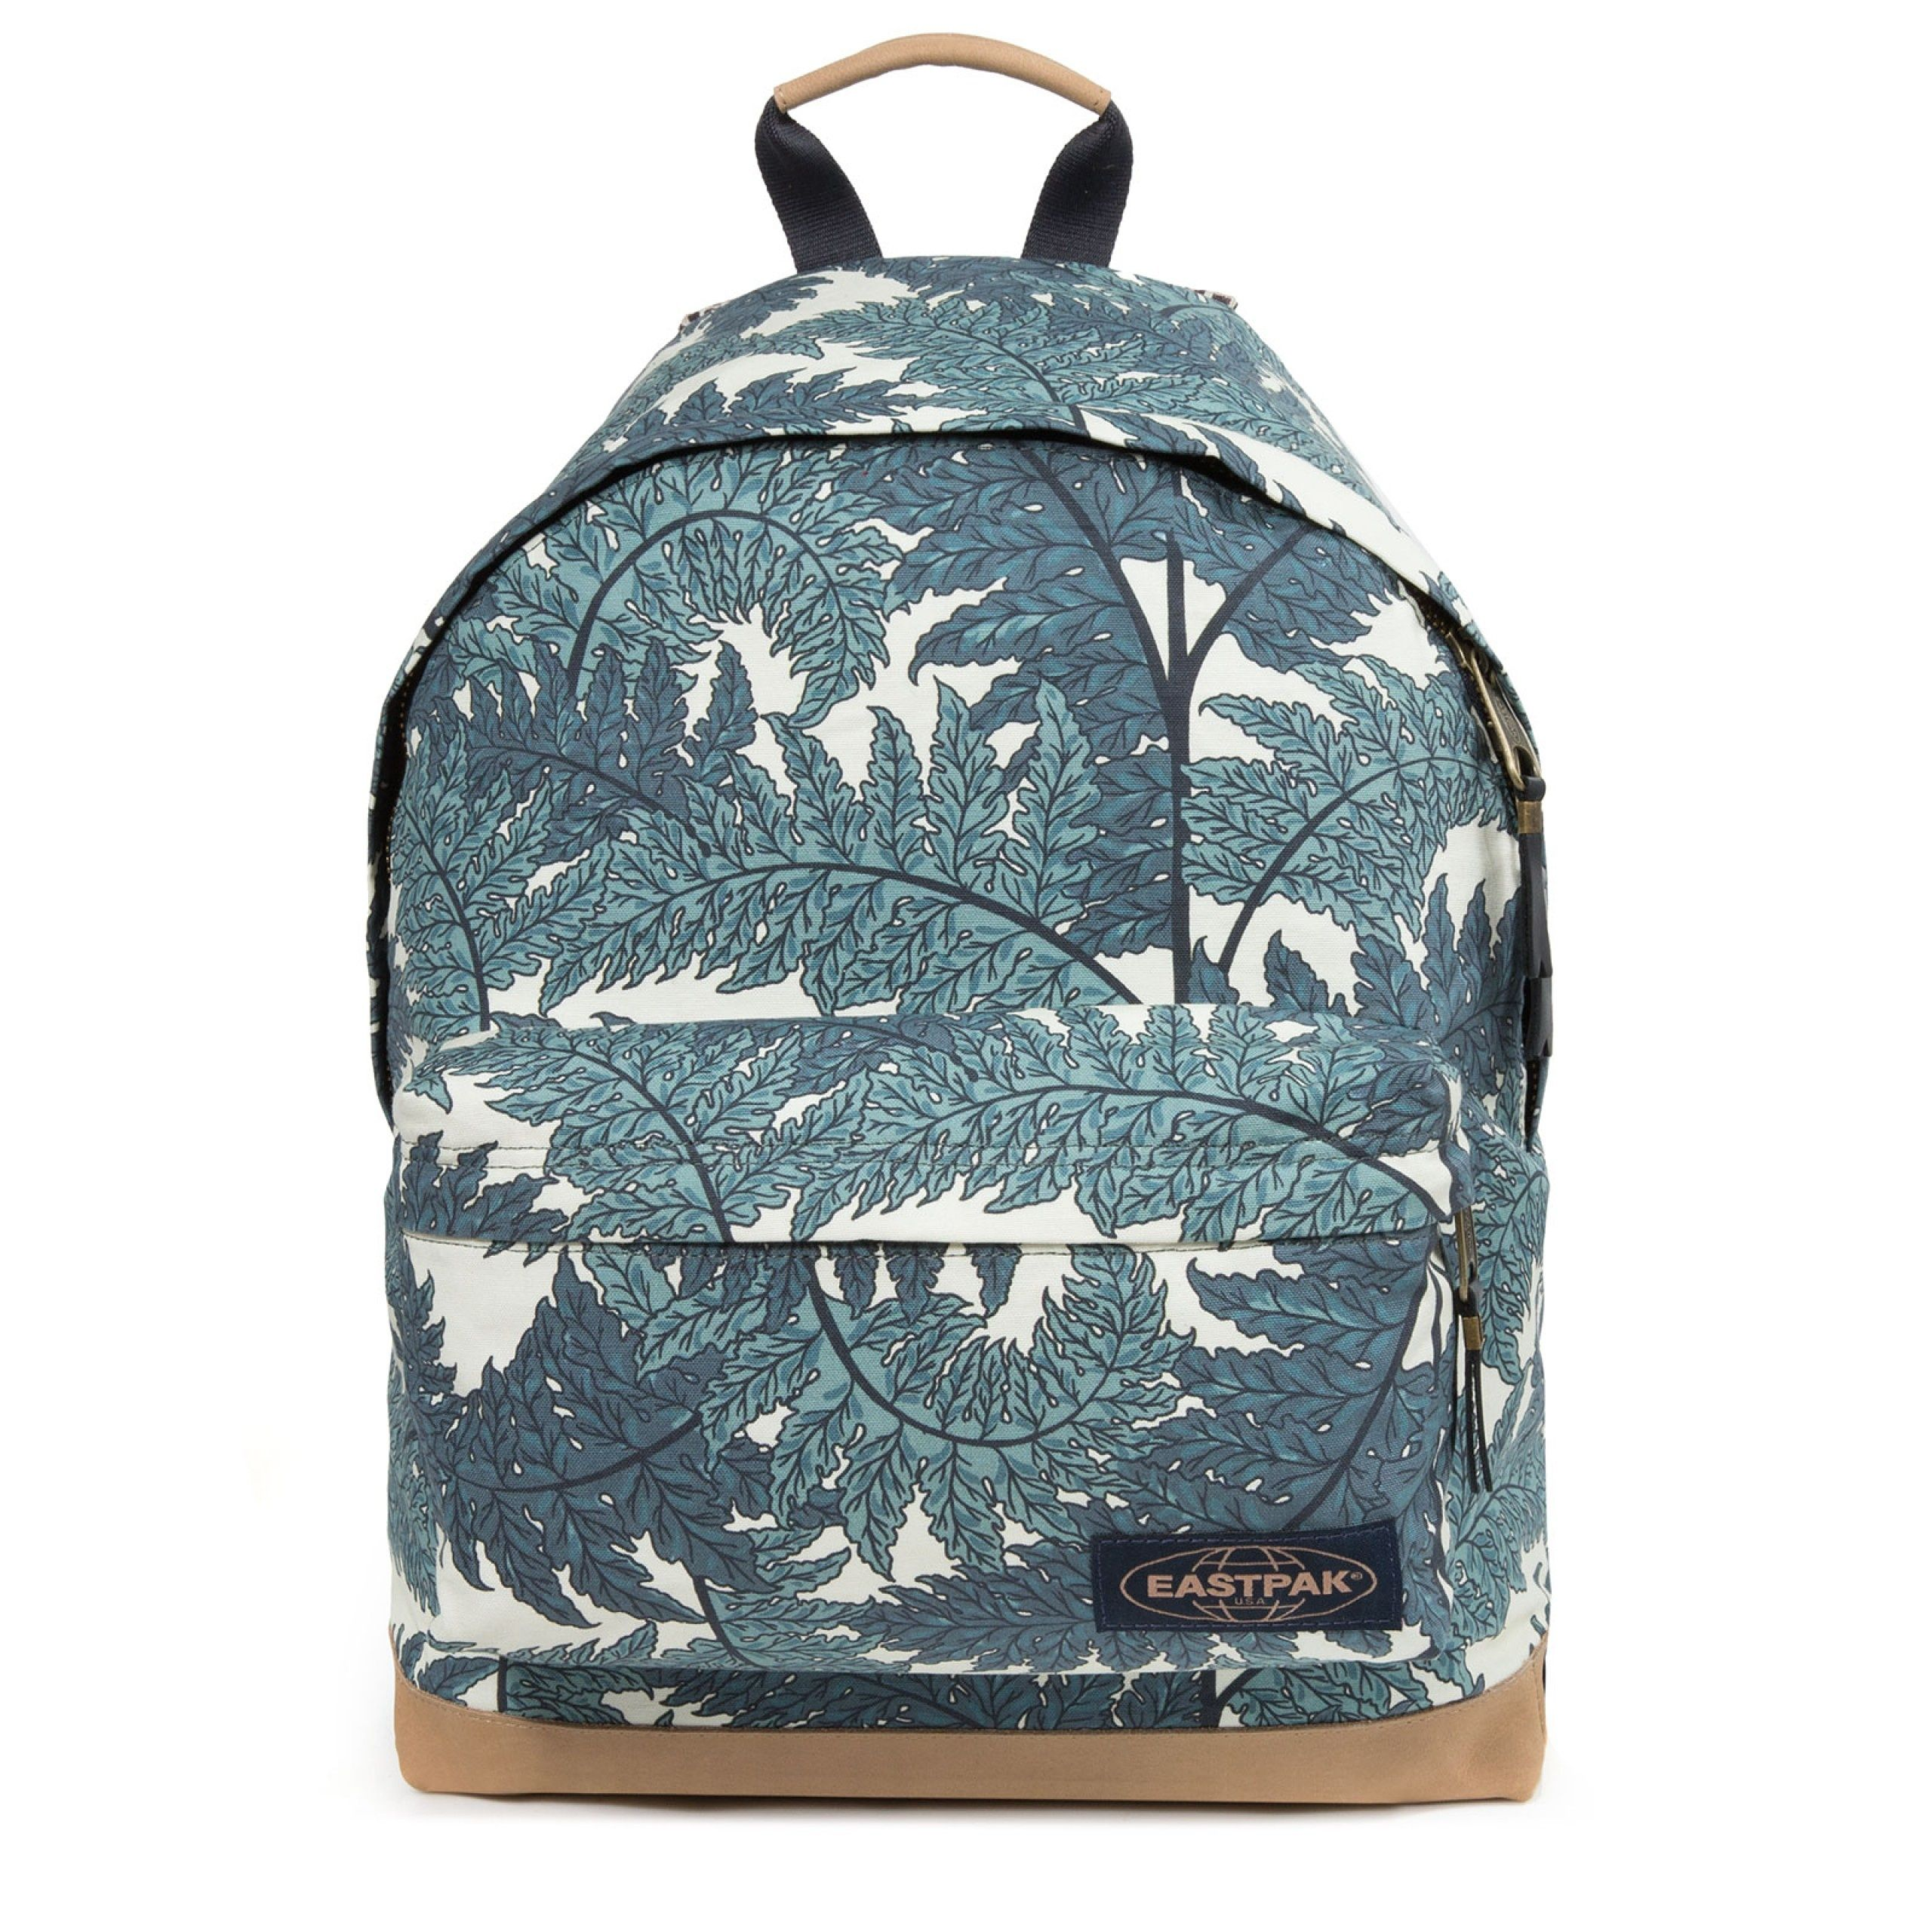 bag it up 10 of the best rucksacks backpacks timberland and